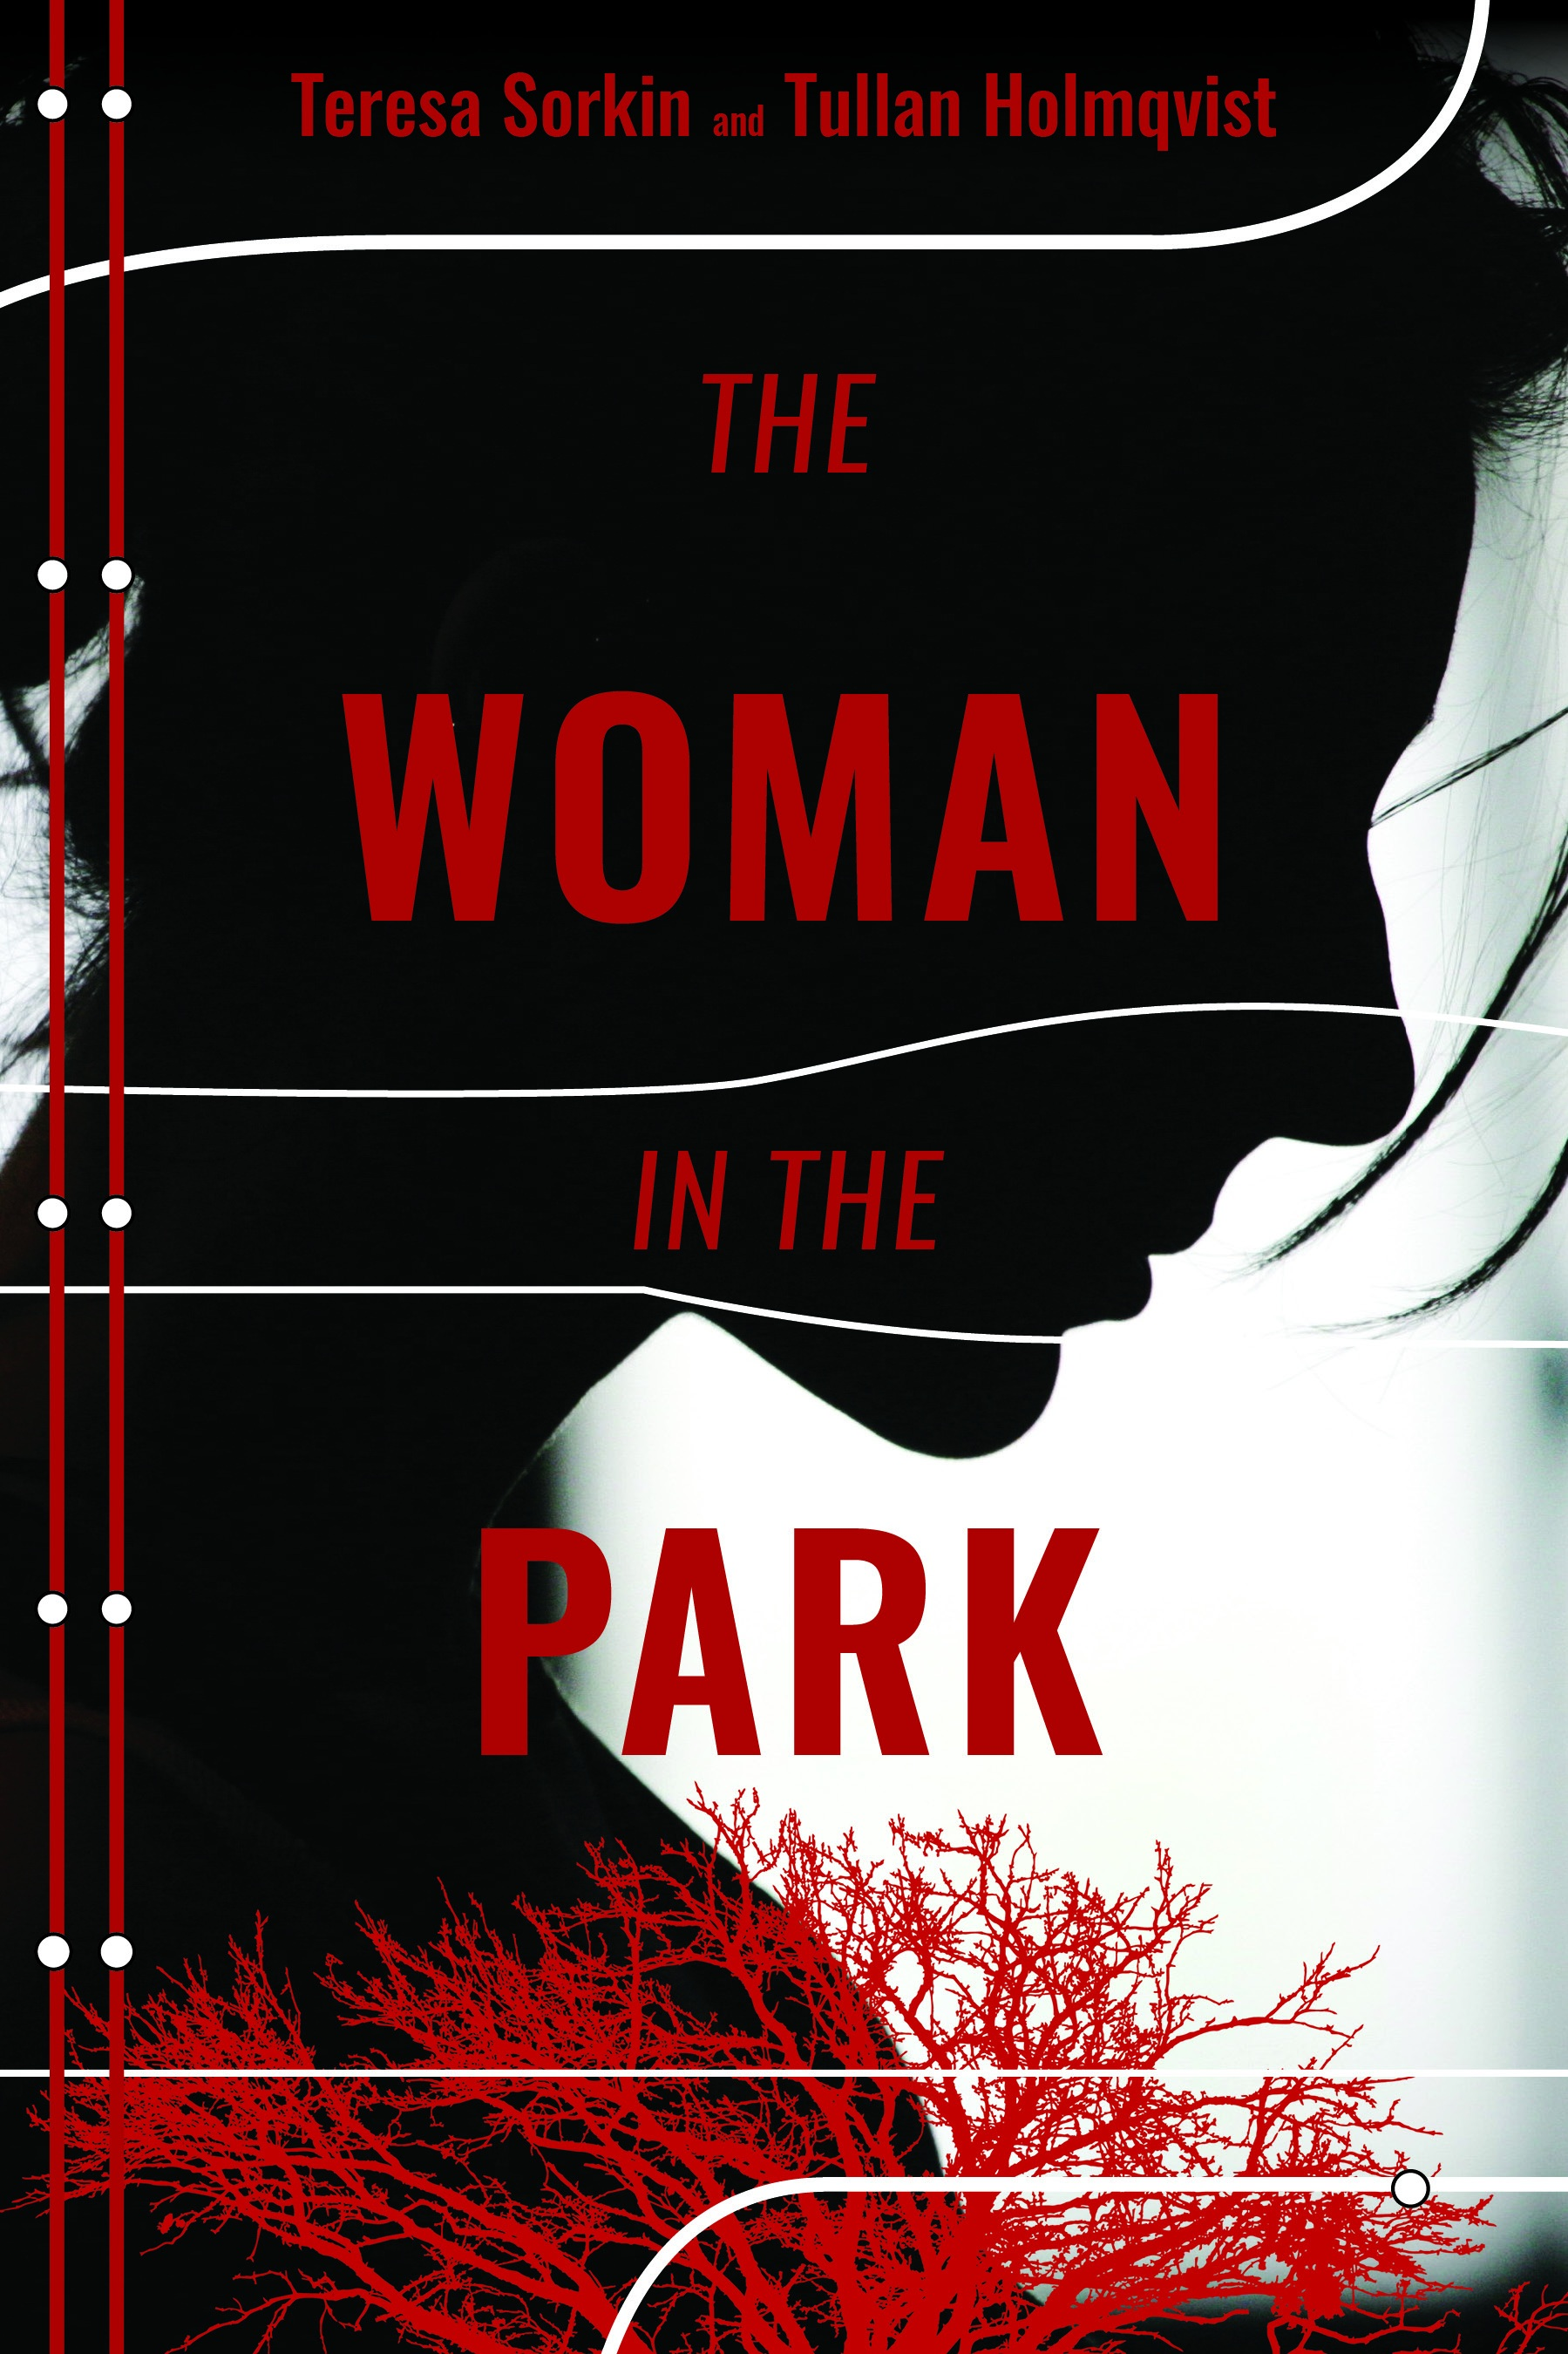 THE WOMAN IN THE PARK - by Tullan Holmqvist and Teresa SorkinWhen Manhattanite Sarah Rock meets a mysterious and handsome stranger in the park, she is drawn to him. Sarah wants to get away from her daily routine, her cheating husband and his crazy mistress, her frequent sessions with her heartless therapist, and her moody children.But nothing is as it seems. Her life begins to unravel when a woman from the park goes missing and Sarah becomes the prime suspect in the woman's disappearance. Her lover is nowhere to be found, her husband is suspicious of her, and her therapist is talking to the police.With no one to trust, Sarah must face her inner demons and uncover the truth to prove her innocence.A thriller that questions what is real-with its shocking twists, secrets, and lies―The Woman in the Park will leave readers breathless.